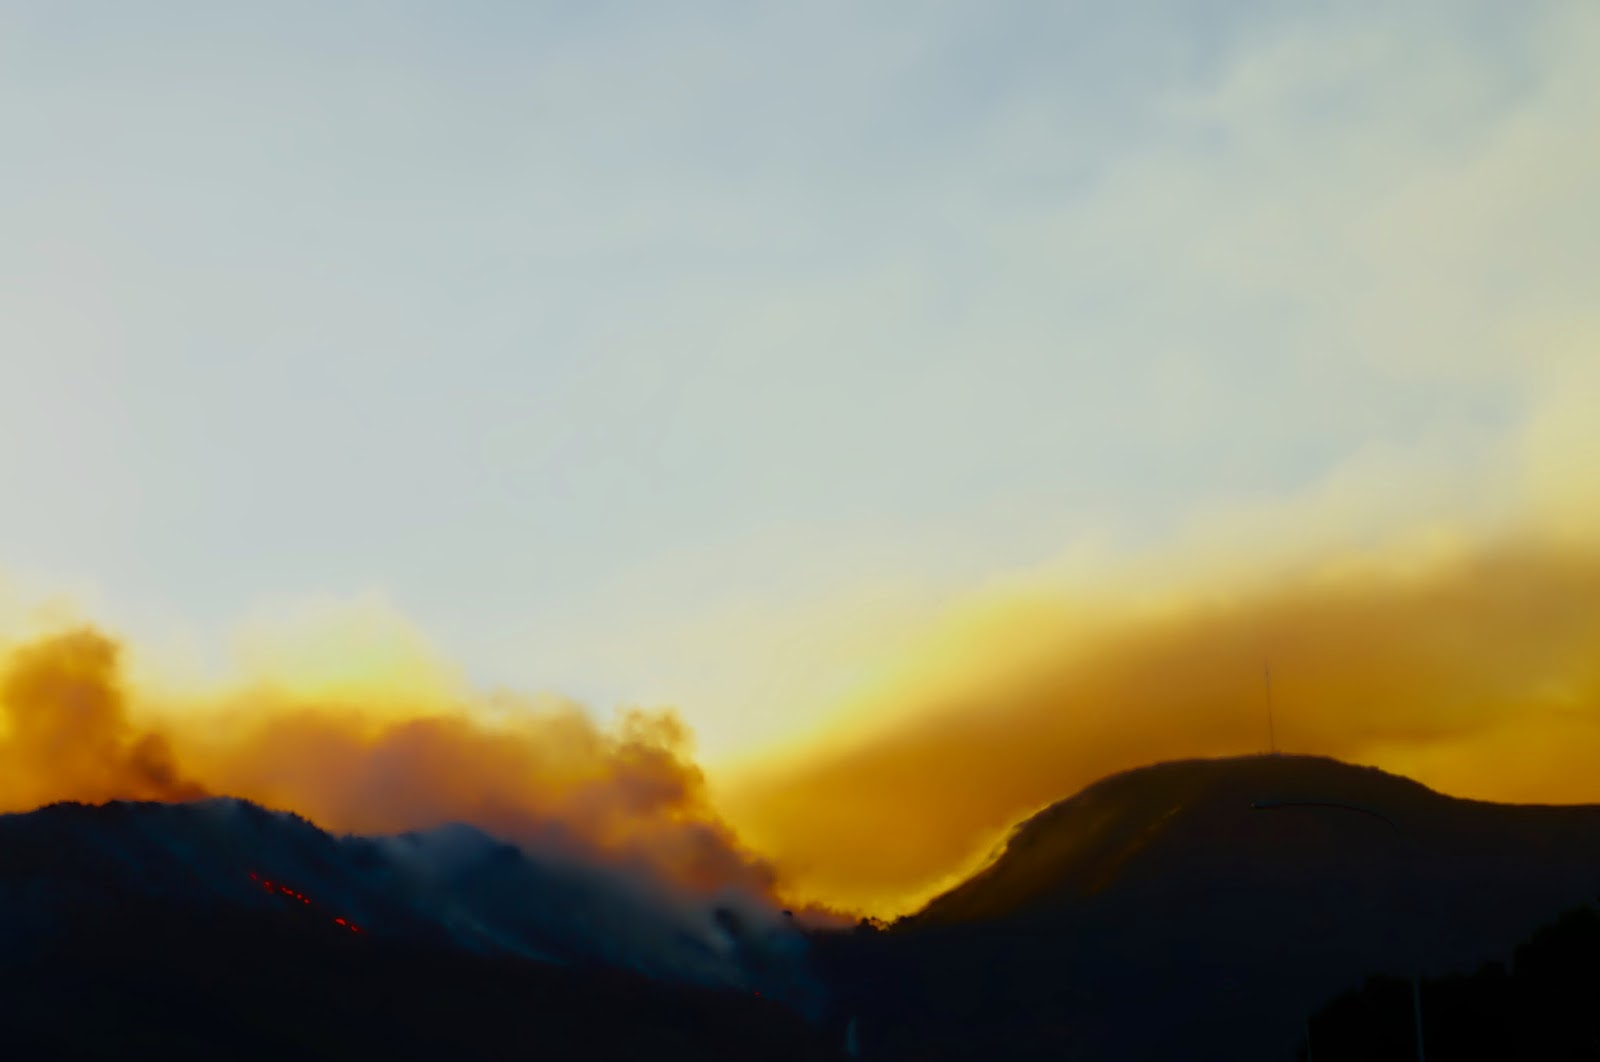 Fire and smoke on mountains